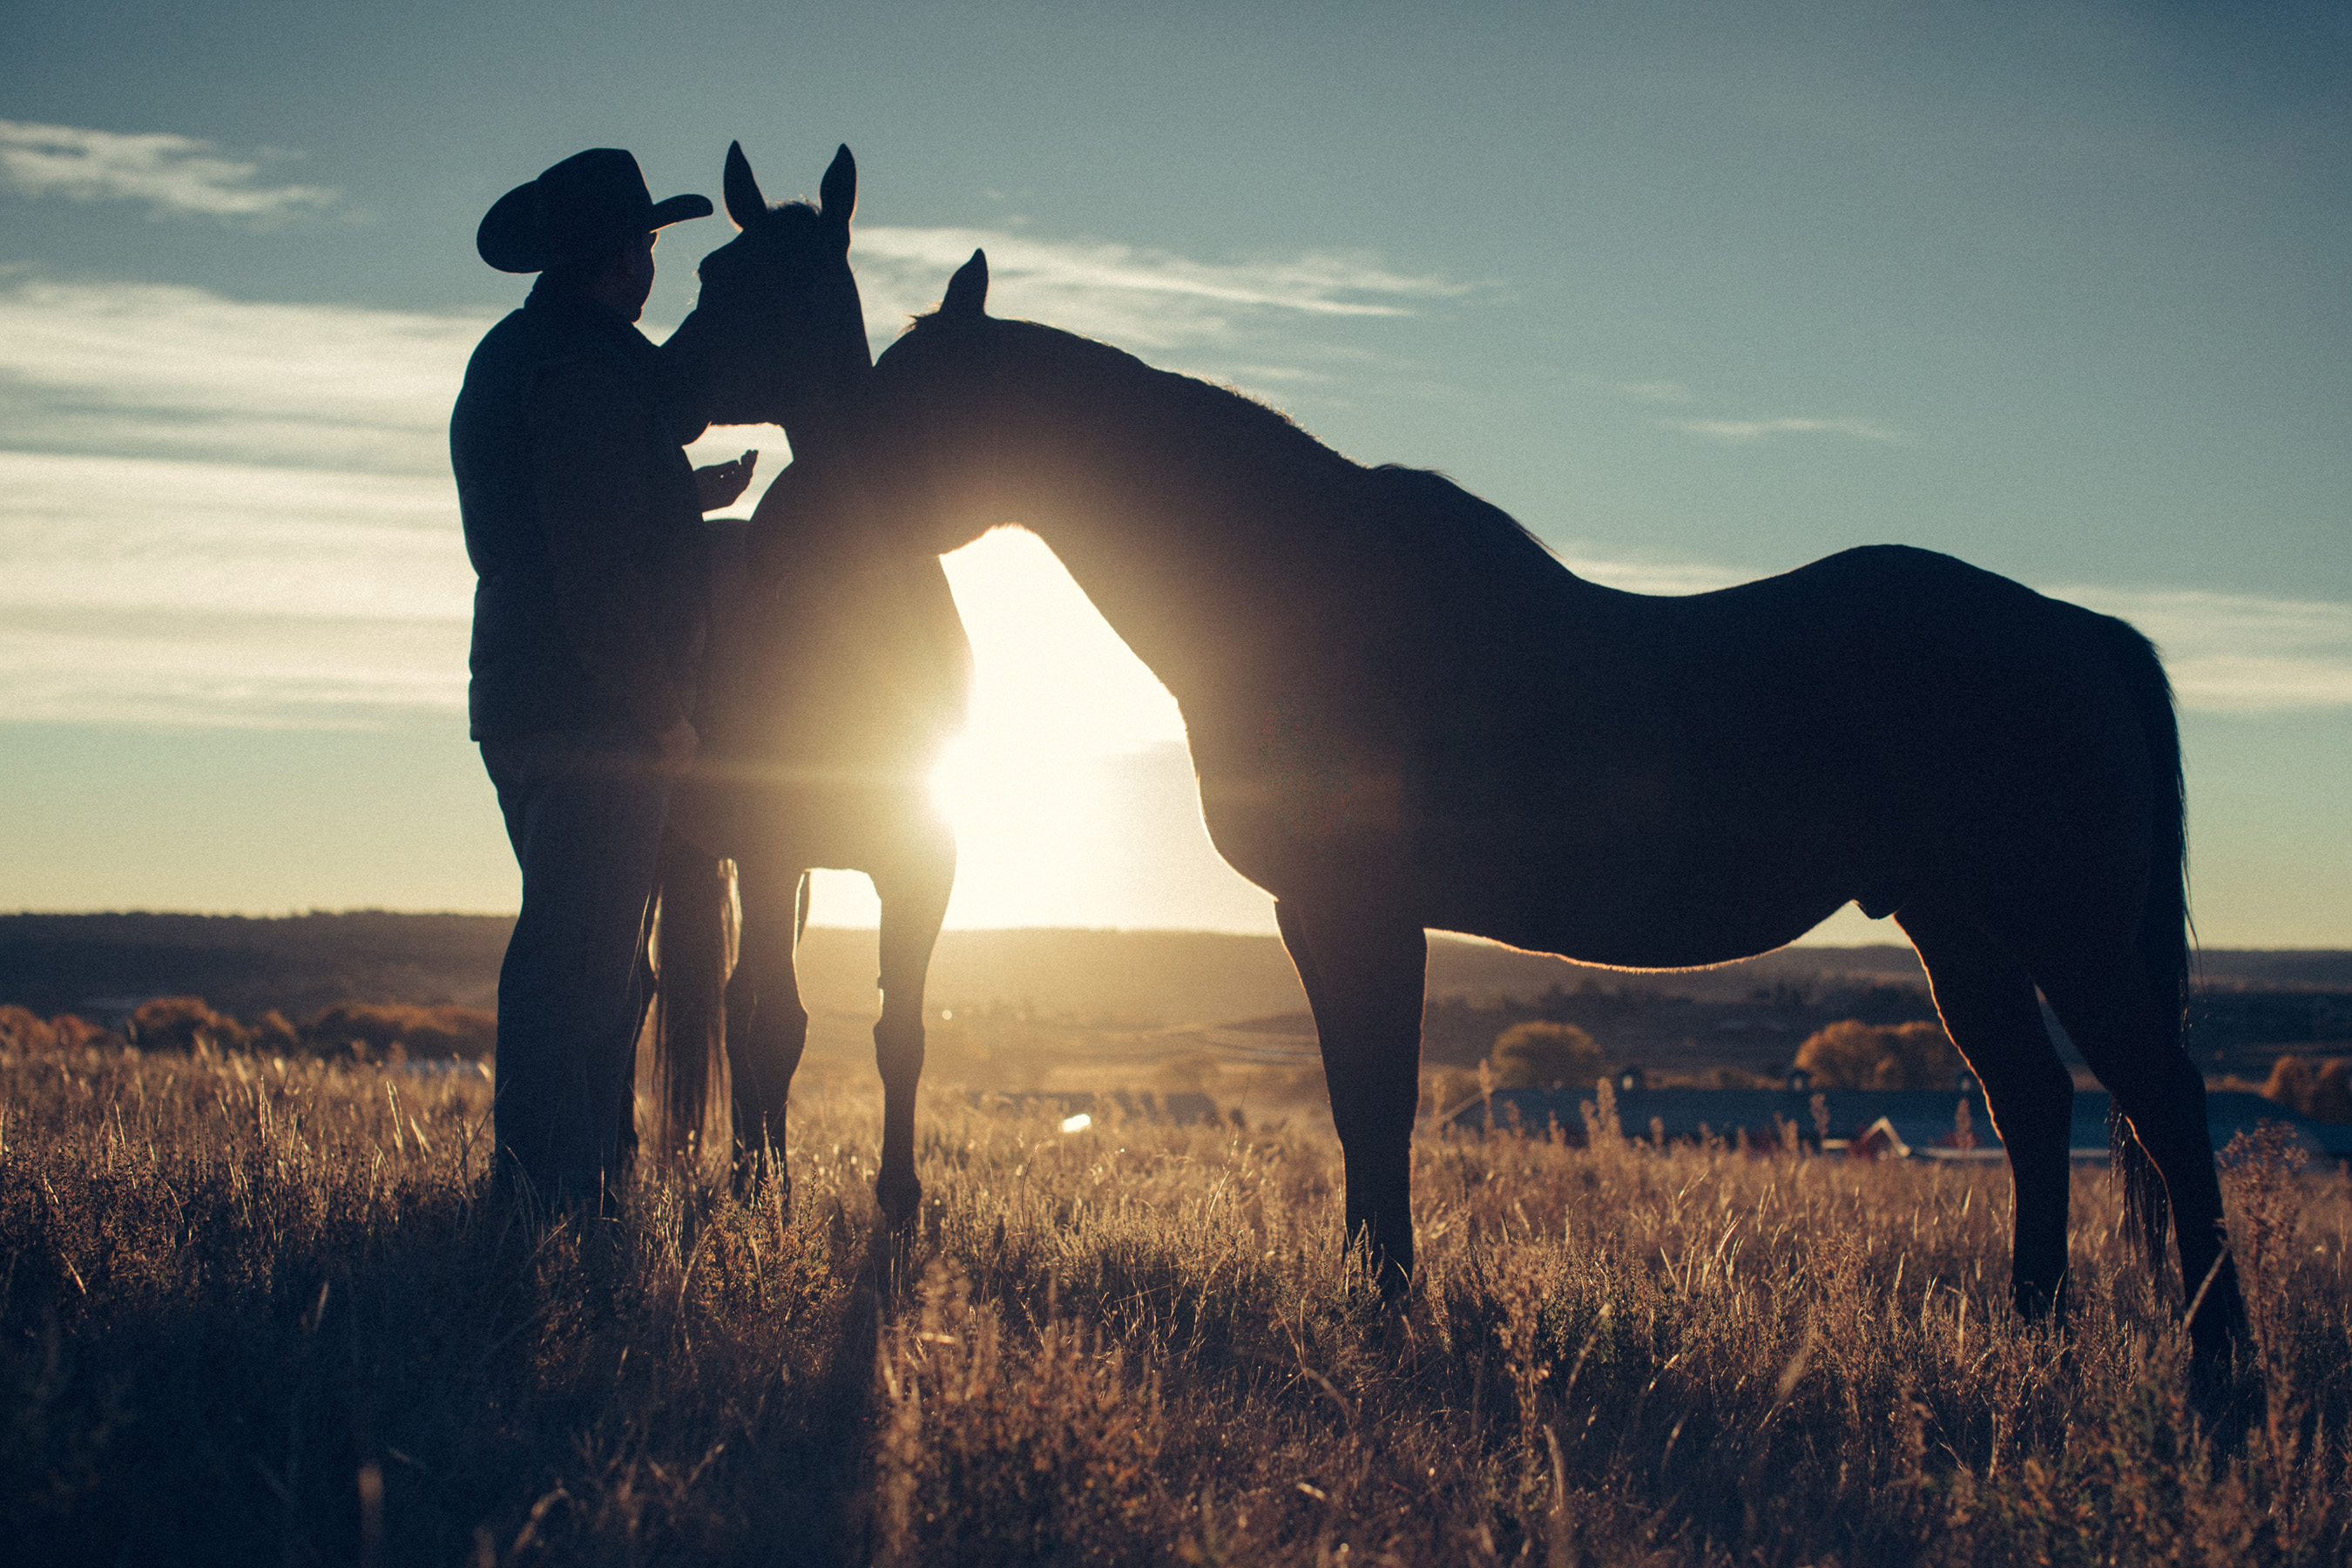 Ready to find your #righthorse? Visit MyRightHorse.org for more information.